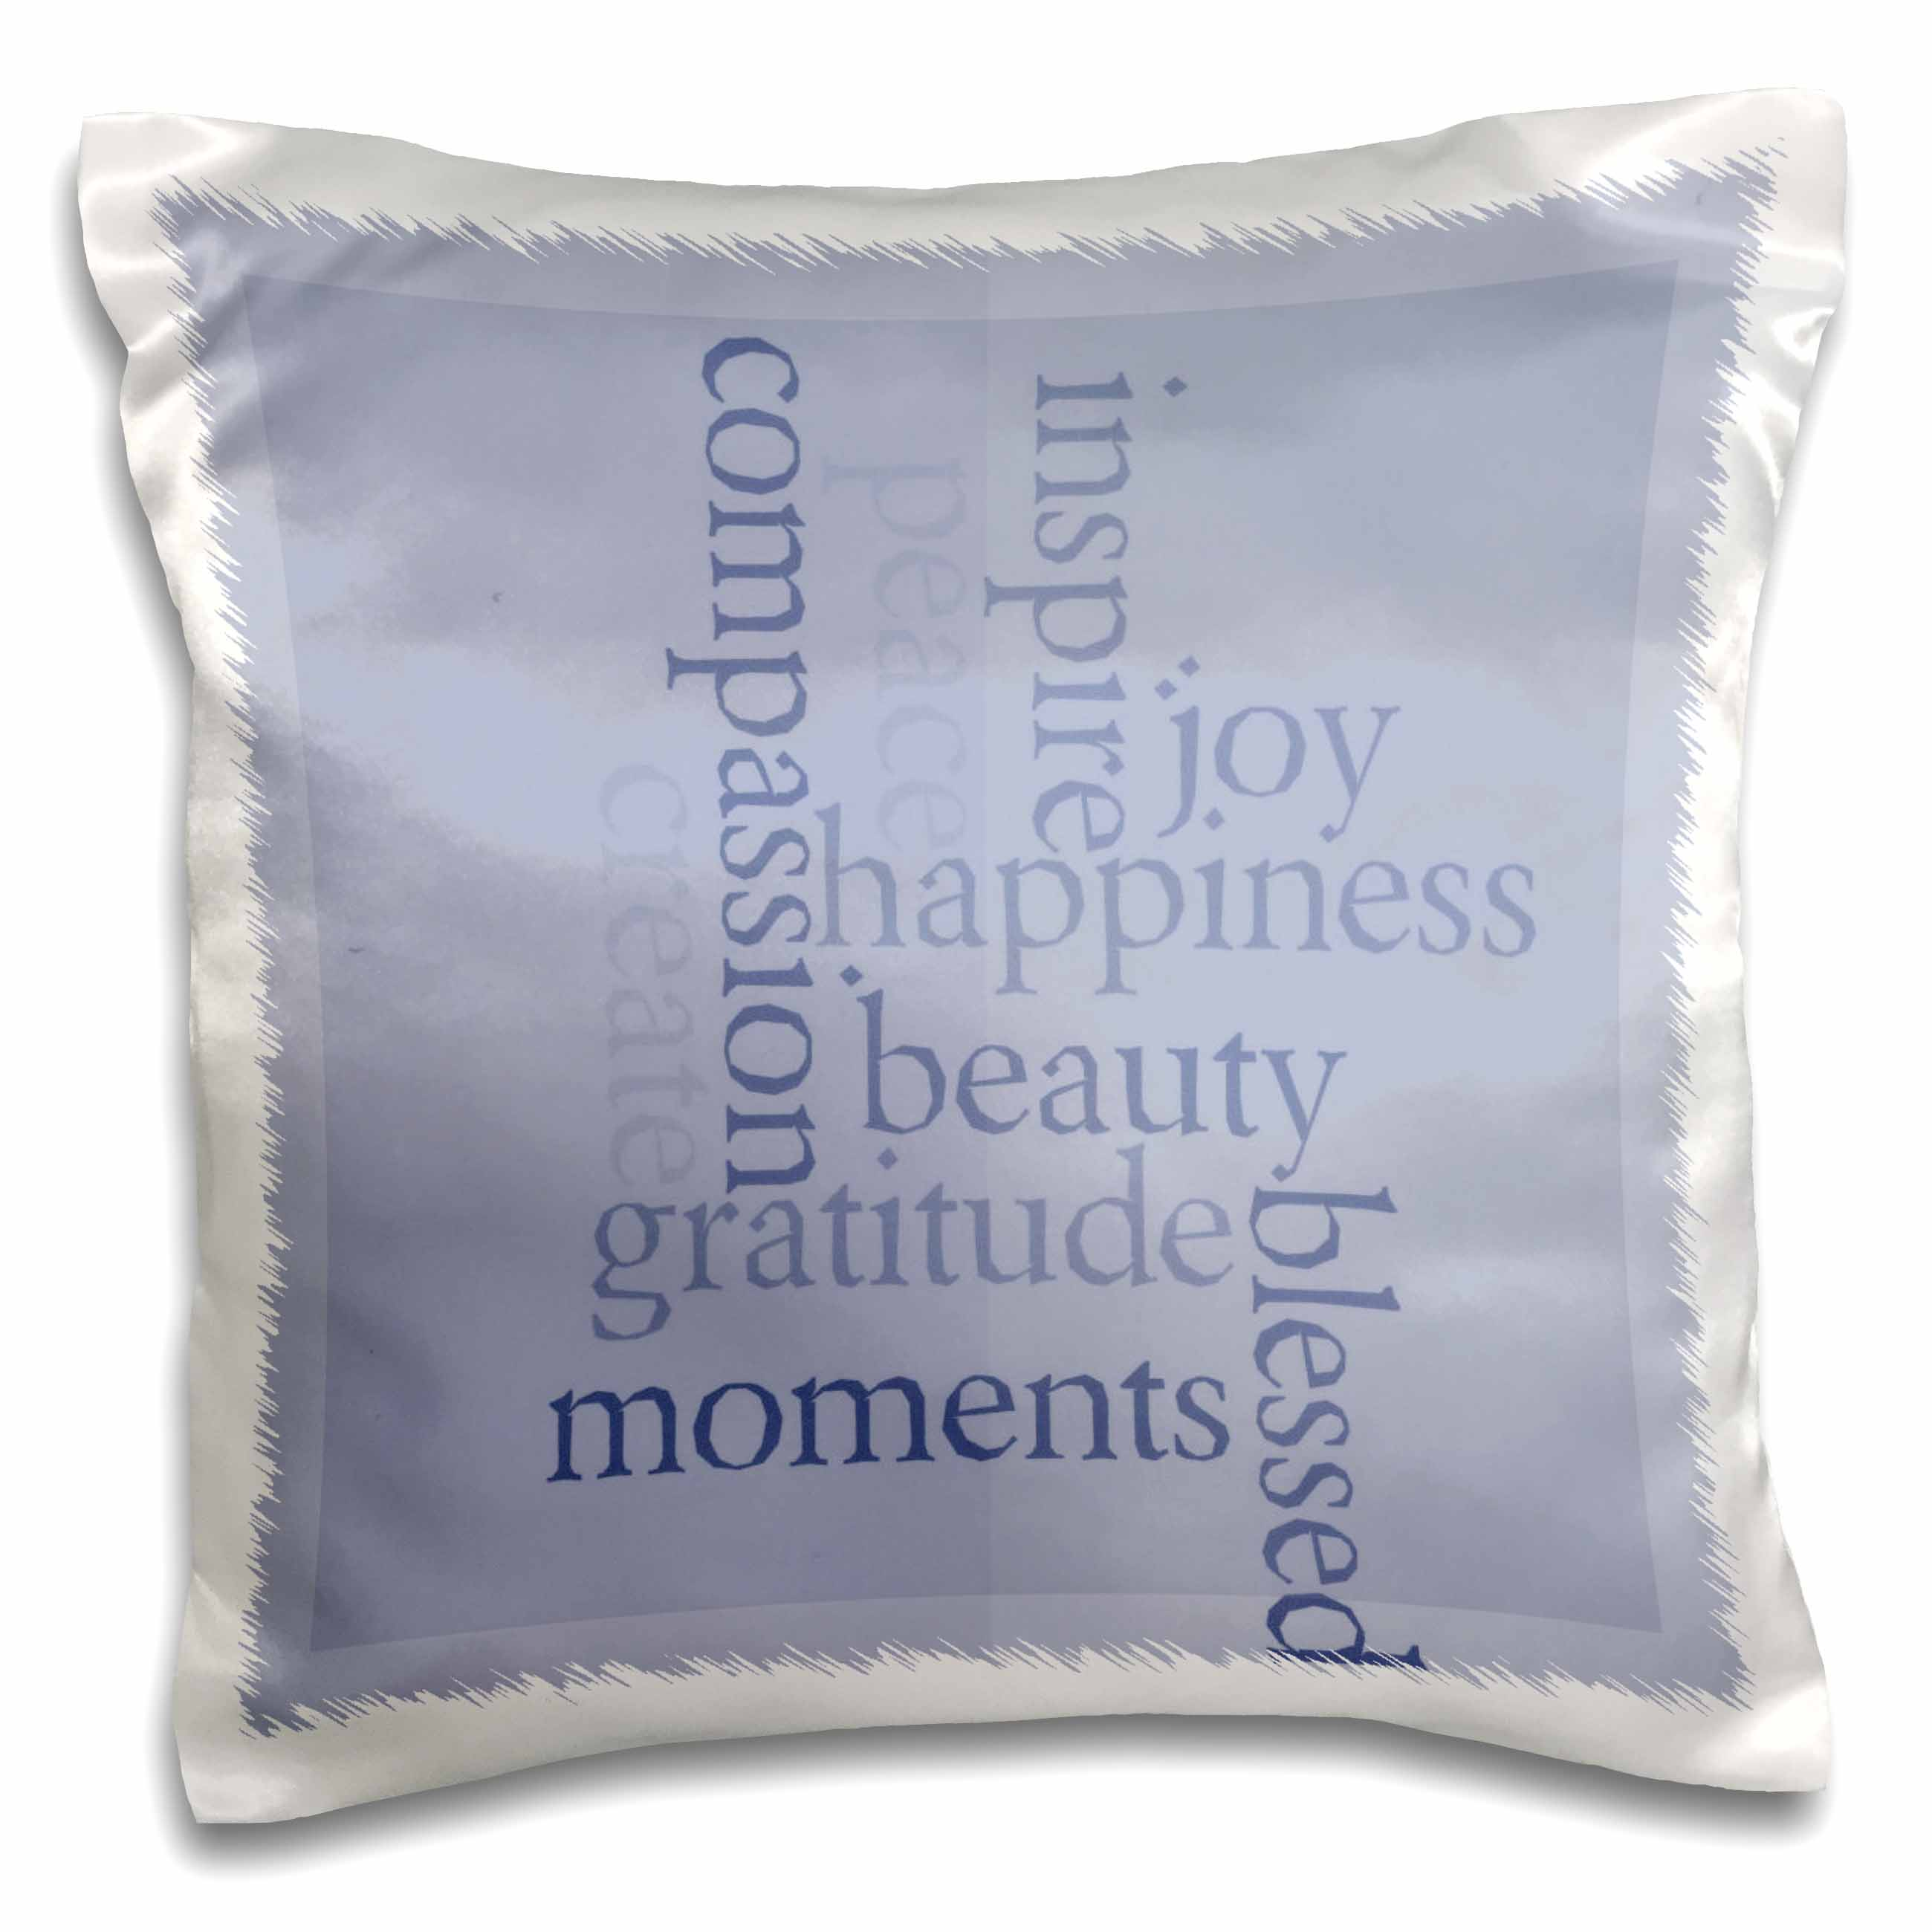 3dRose Inspire Happiness and Gratitude Blue- Inspirational Words- Motivational, Pillow Case, 16 by 16-inch